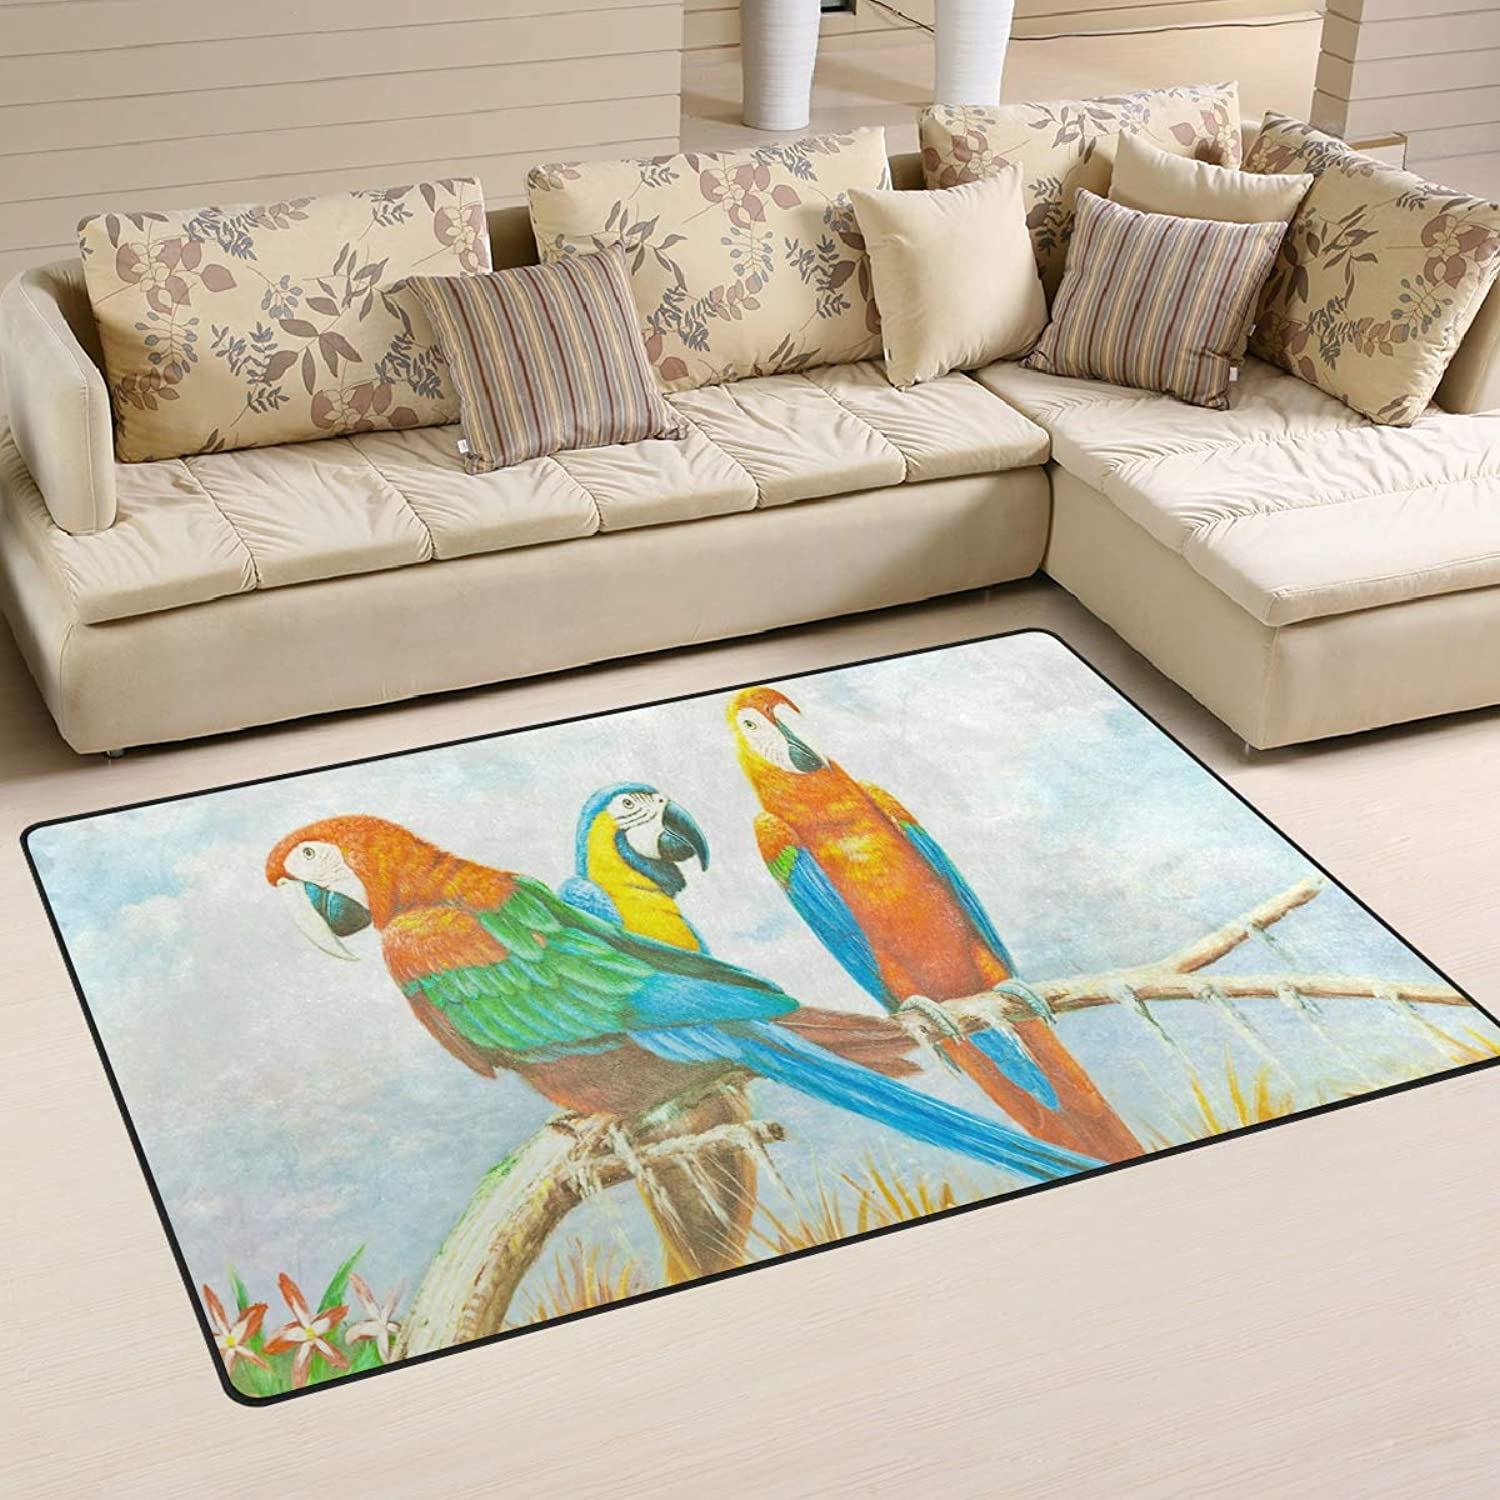 Area Rugs Doormats Painting colorful Macaw Parred 5'x3'3 (60x39 Inches) Non-Slip Floor Mat Soft Carpet for Living Dining Bedroom Home